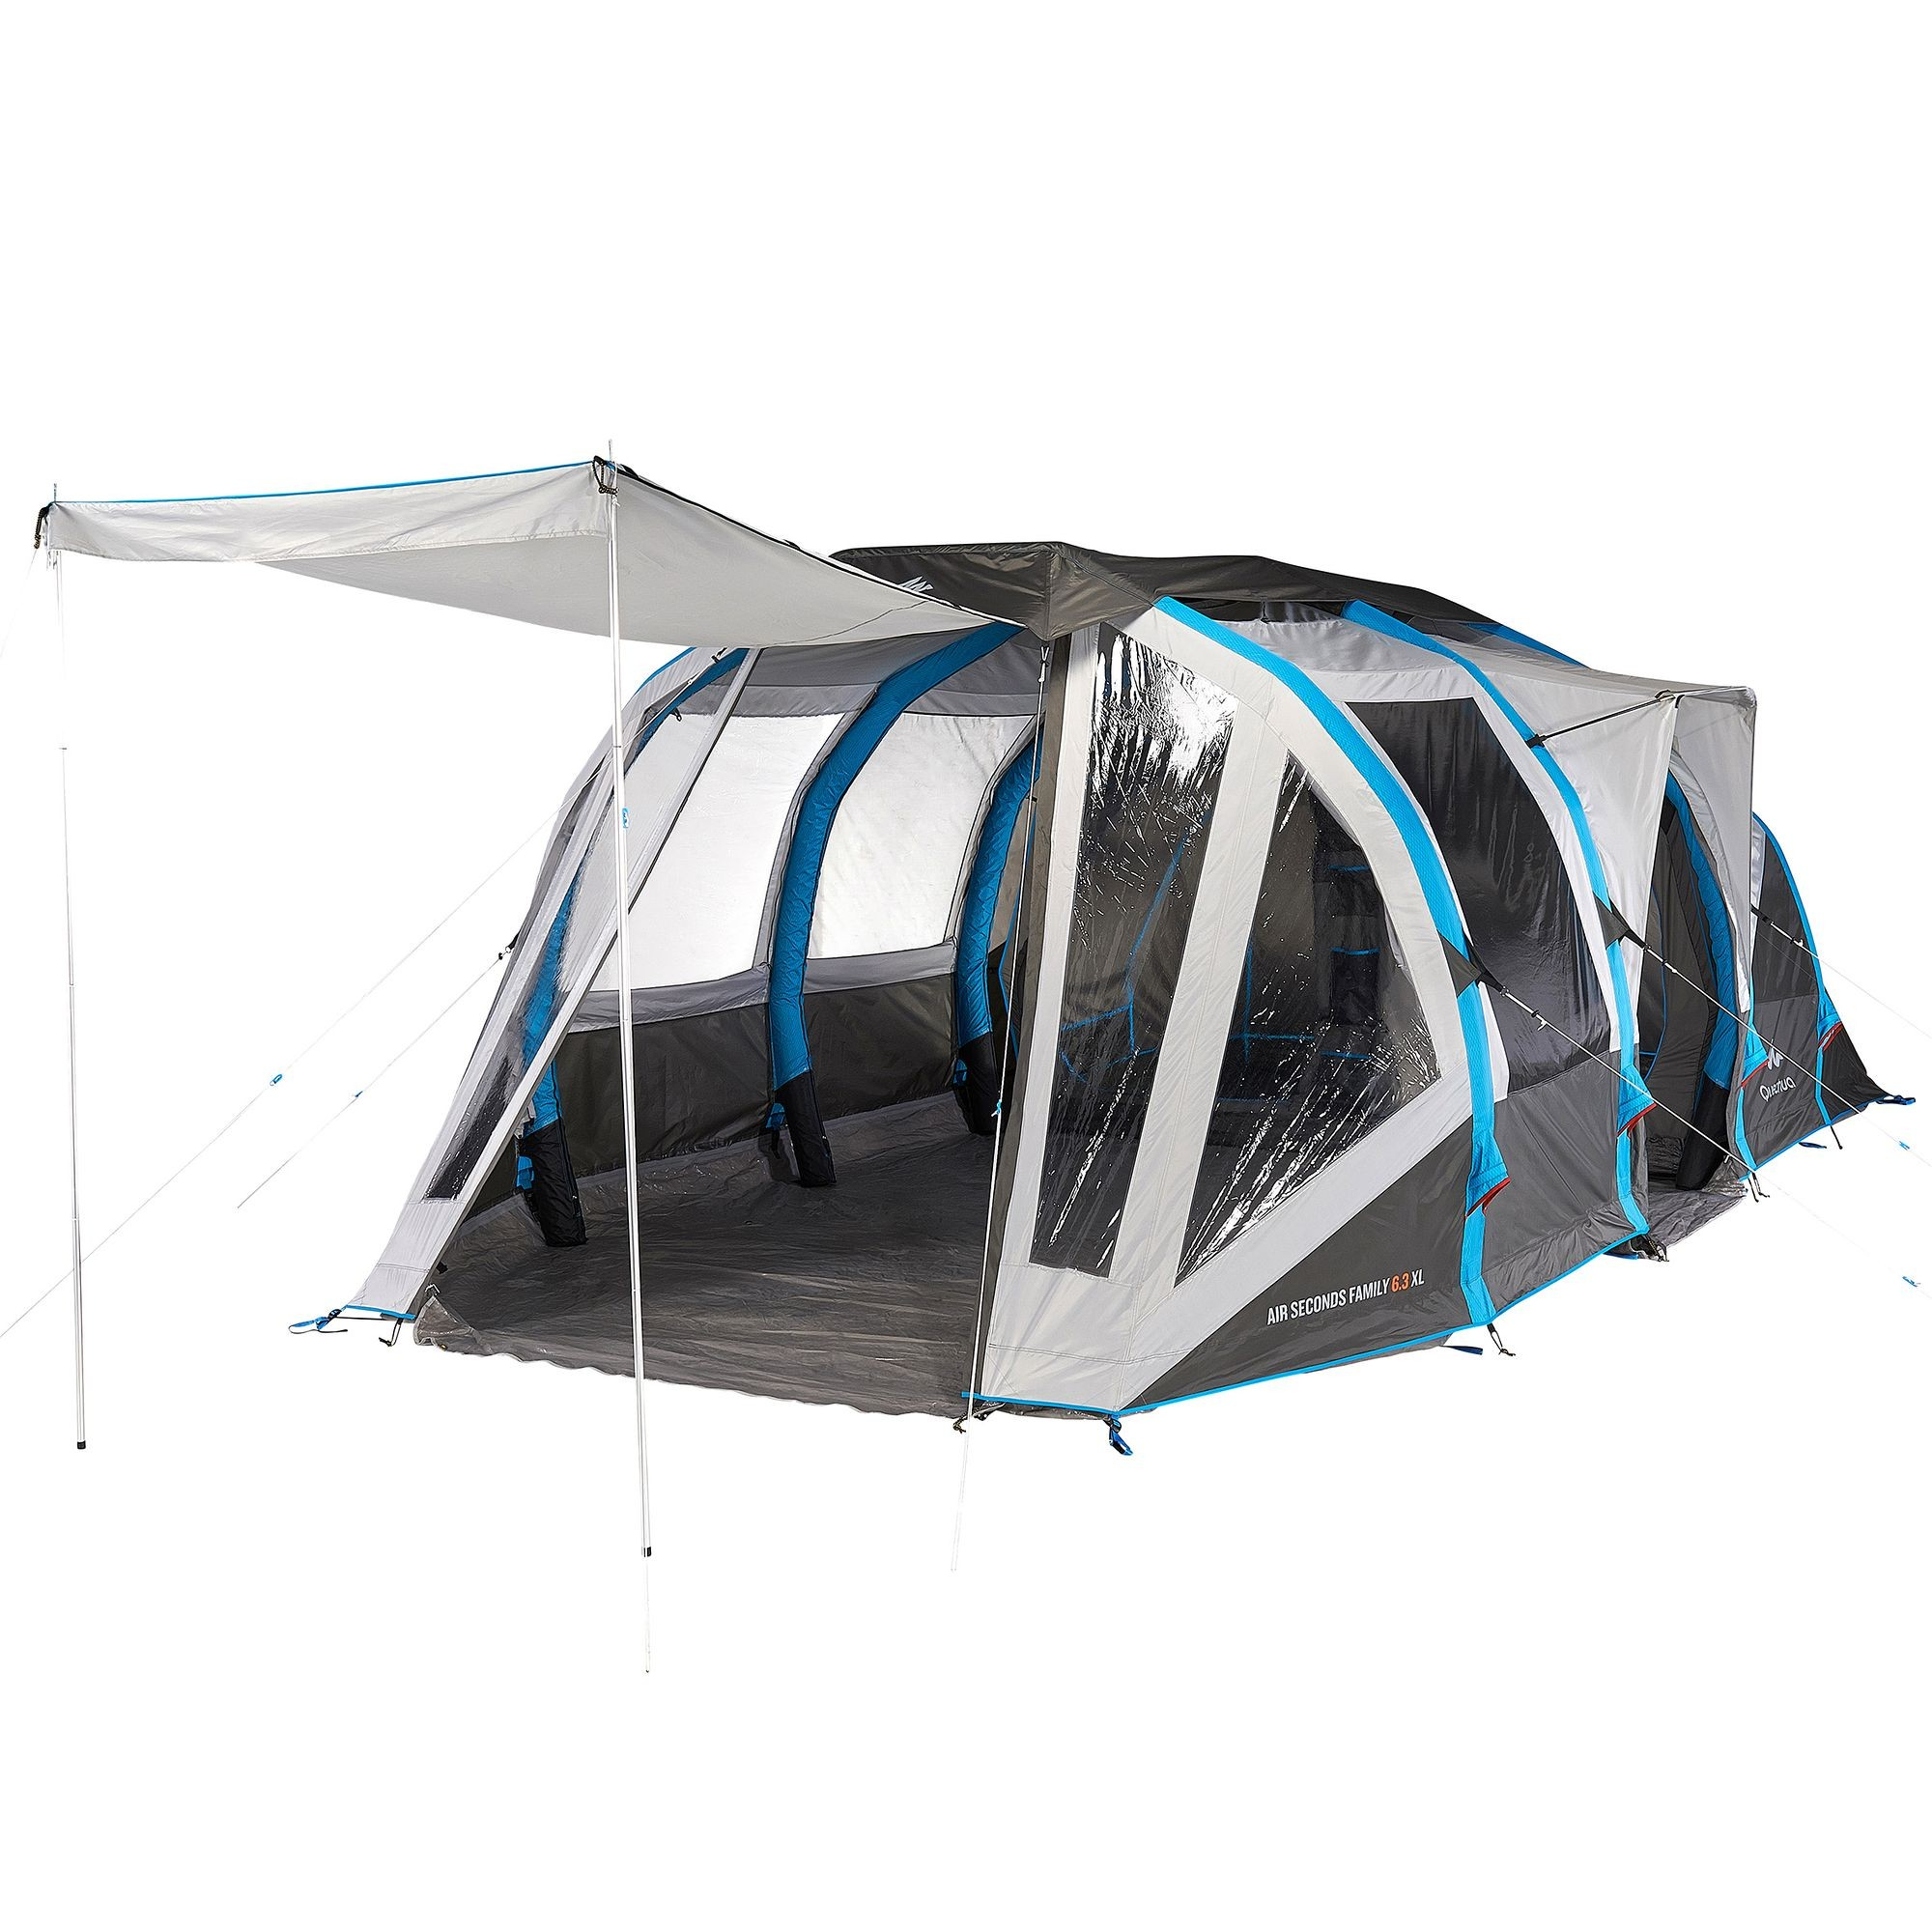 Tente Air Seconds Family 6 3xl Quechua Tente Decathlon